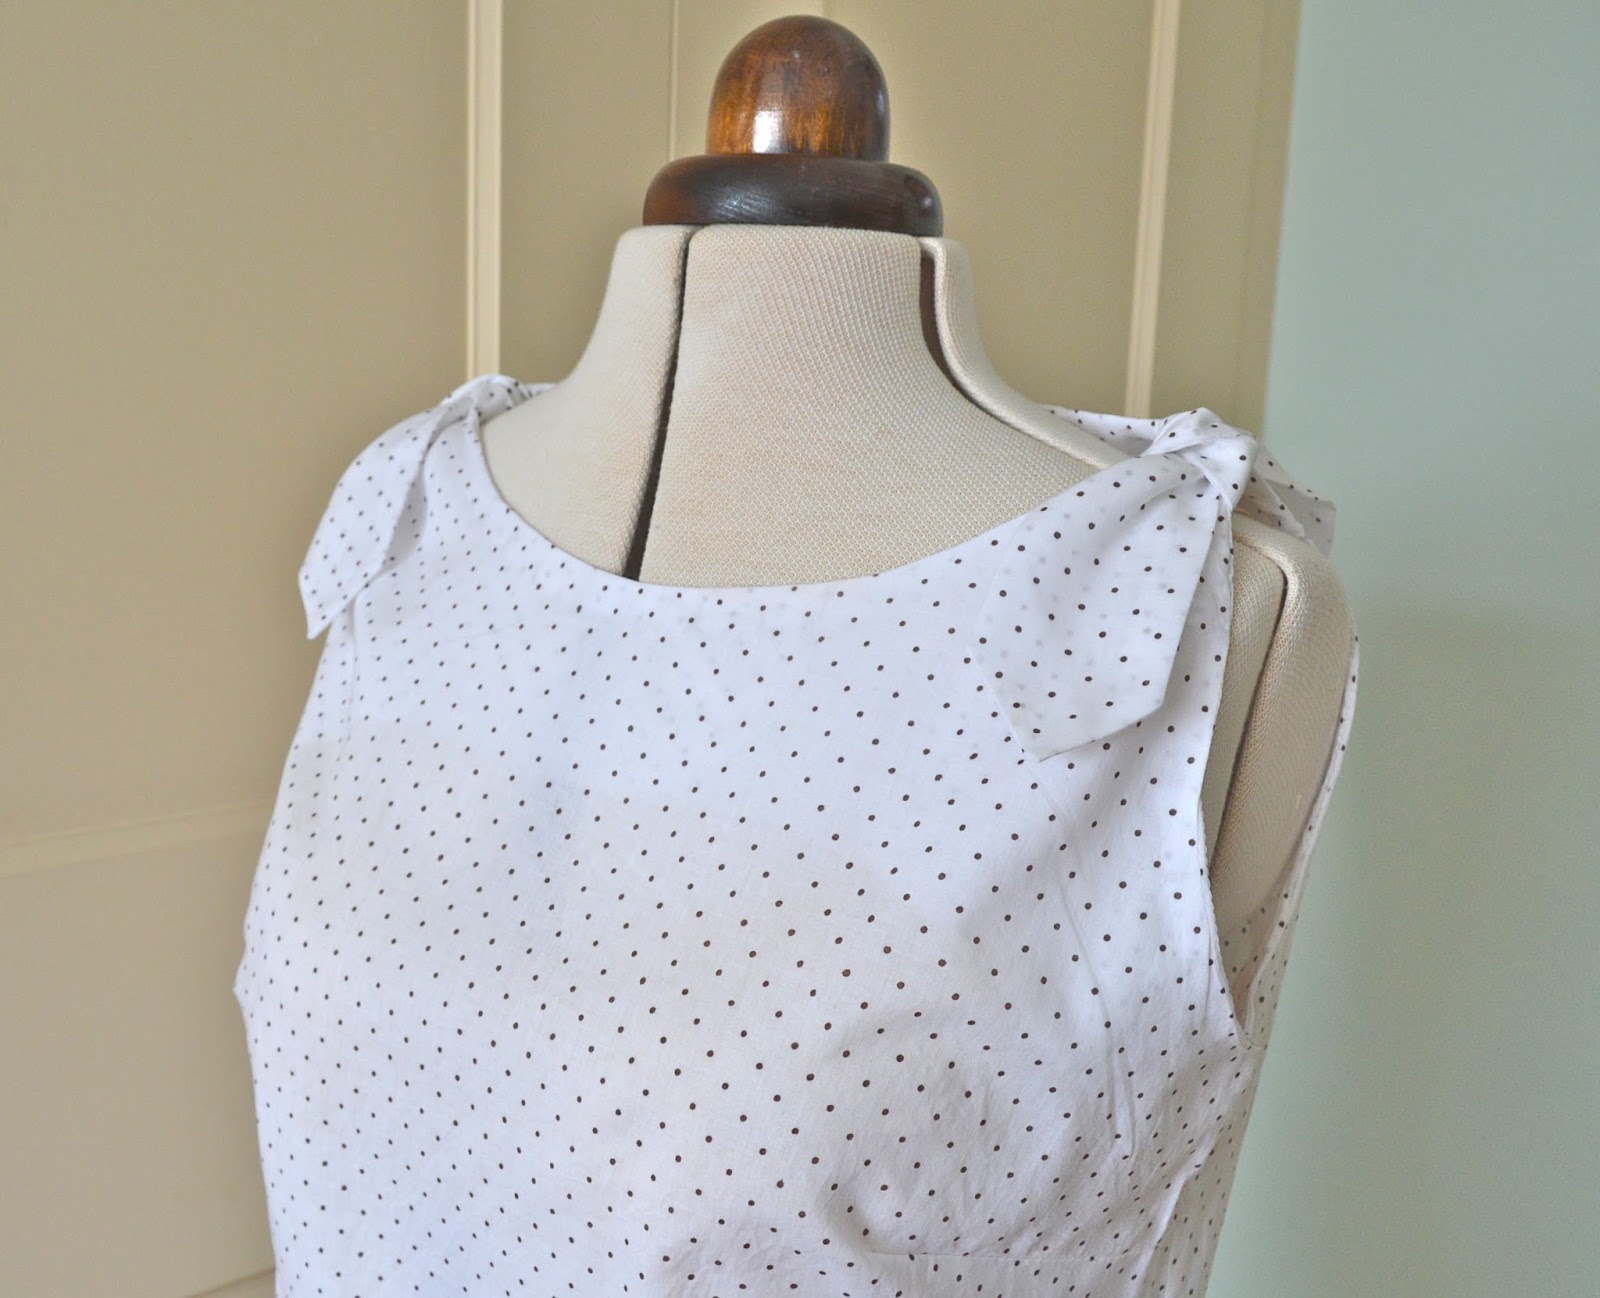 890f4e2cfe610 The pattern is a Woman's Own mail order pattern from 1961 and this latest  version is made from some lightweight polka dot lawn I received from Cindy  a few ...